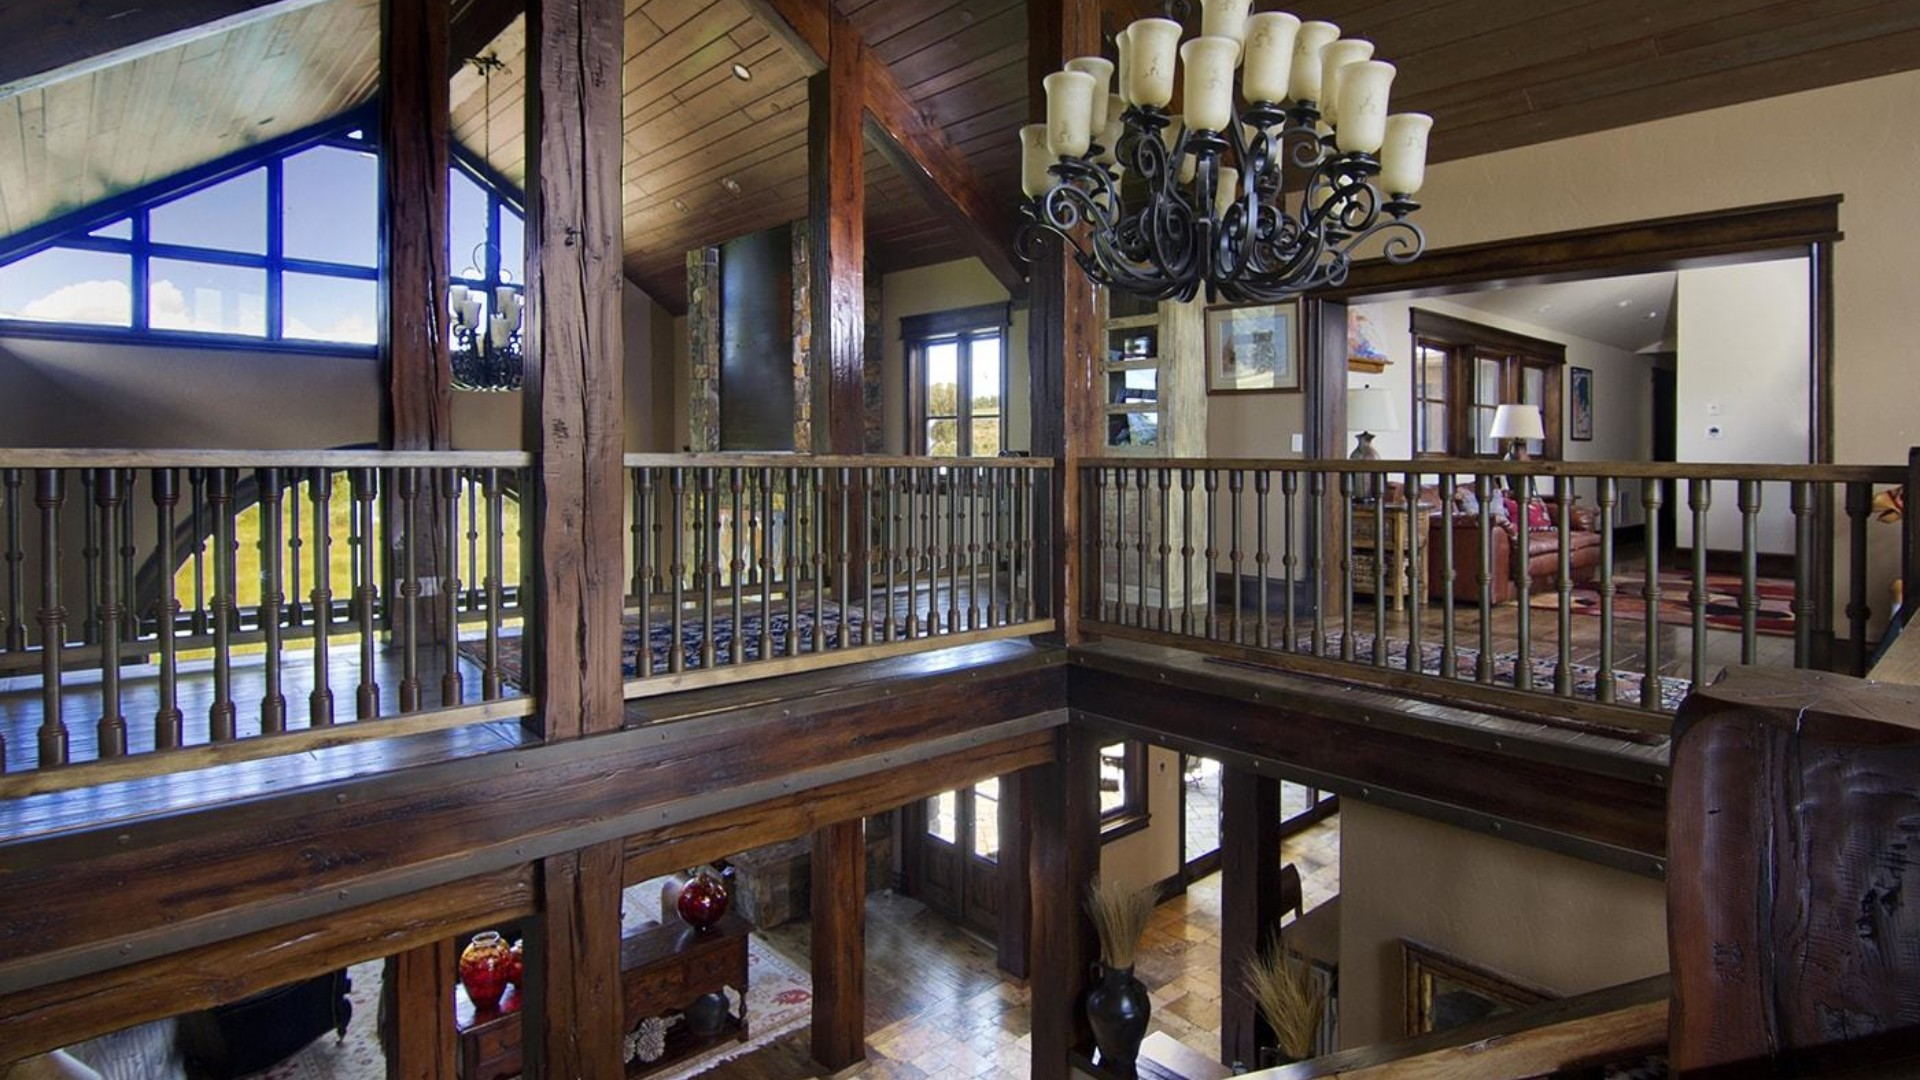 wide view of a rustic mansion upstairs loft area with wooden beams, large windows and a chandelier